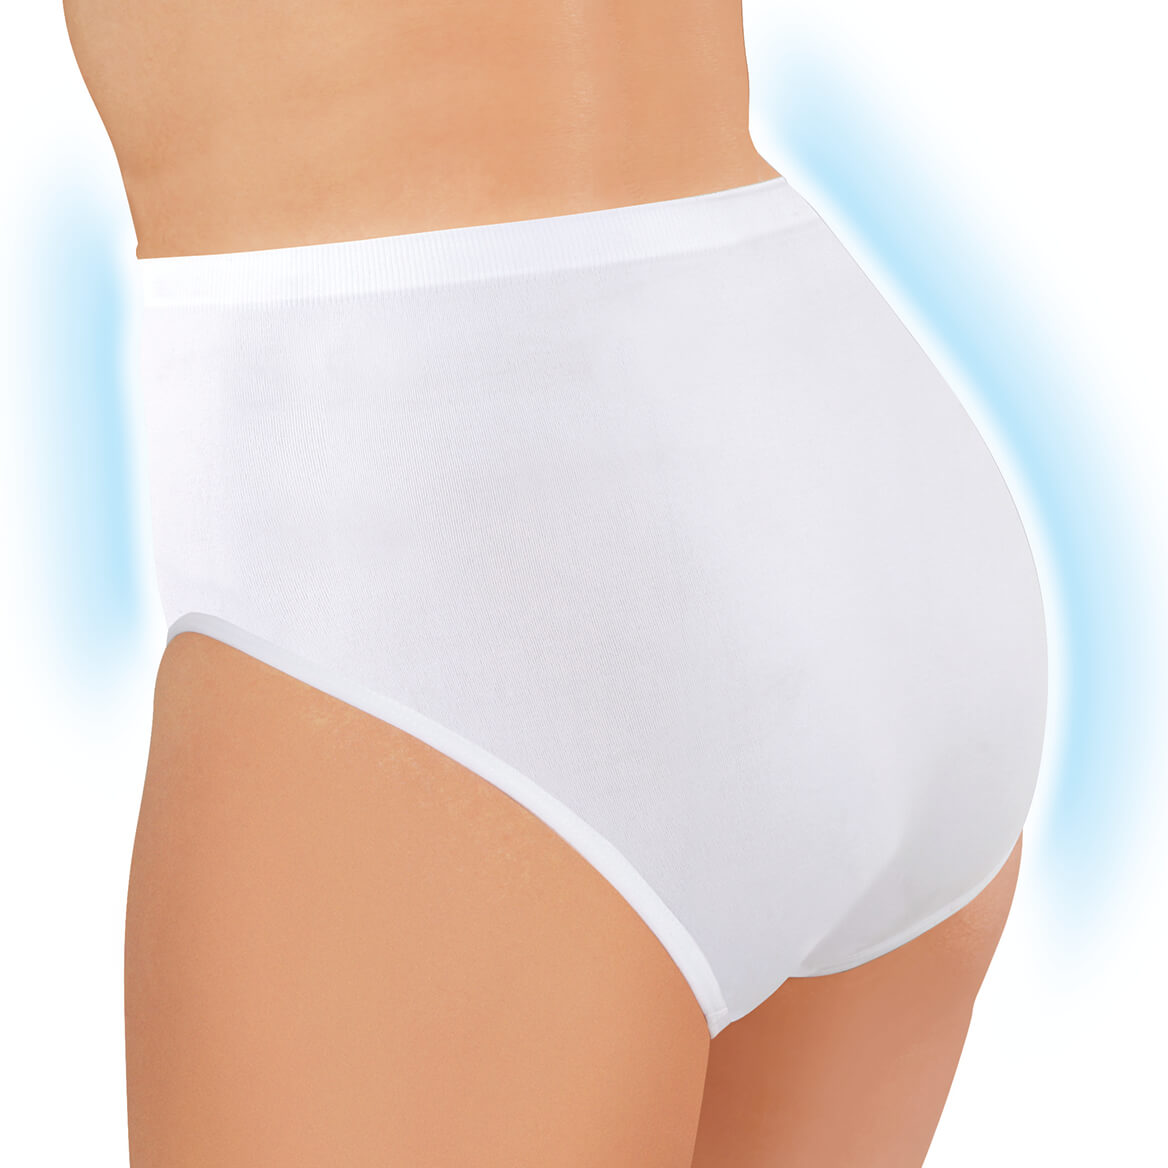 Super Stretch Cooling Panties-370212